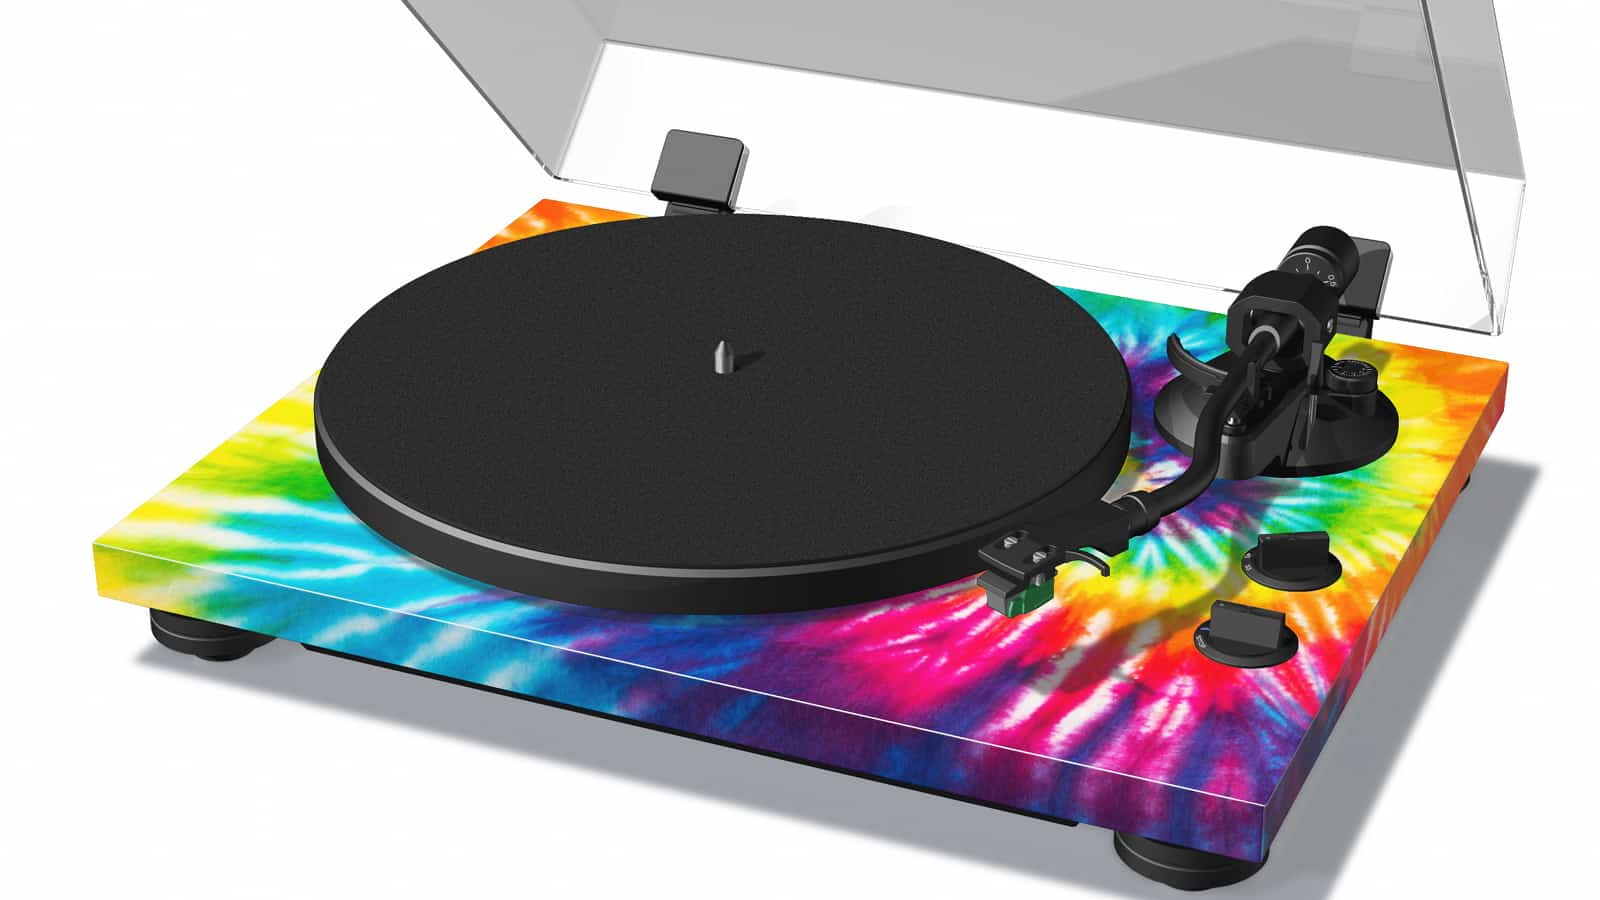 teac-tn420-colorful-turntable-system